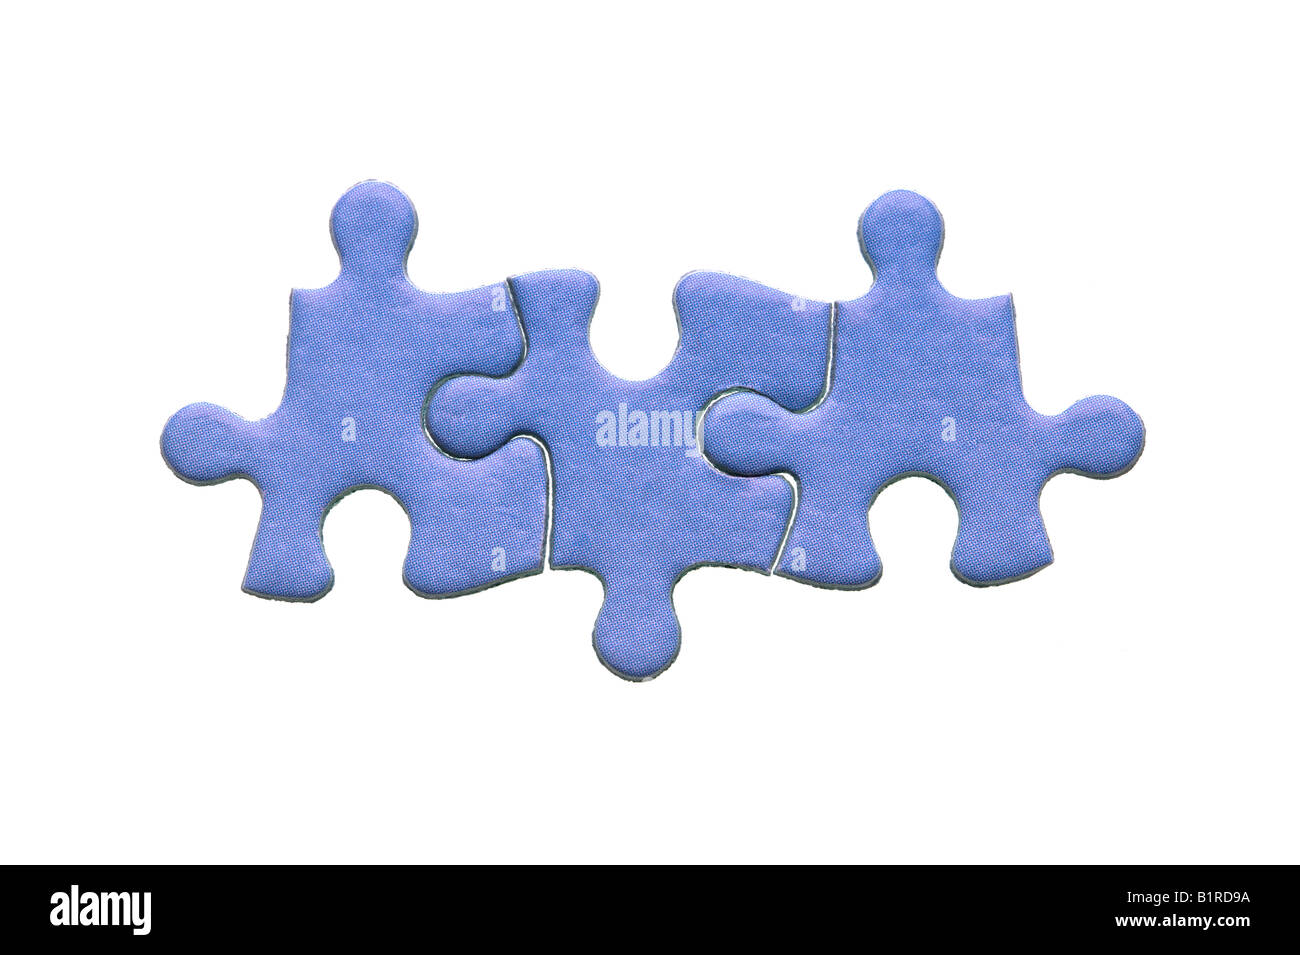 Three blue genuine jigsaw puzzle pieces isolated on a white background Stock Photo